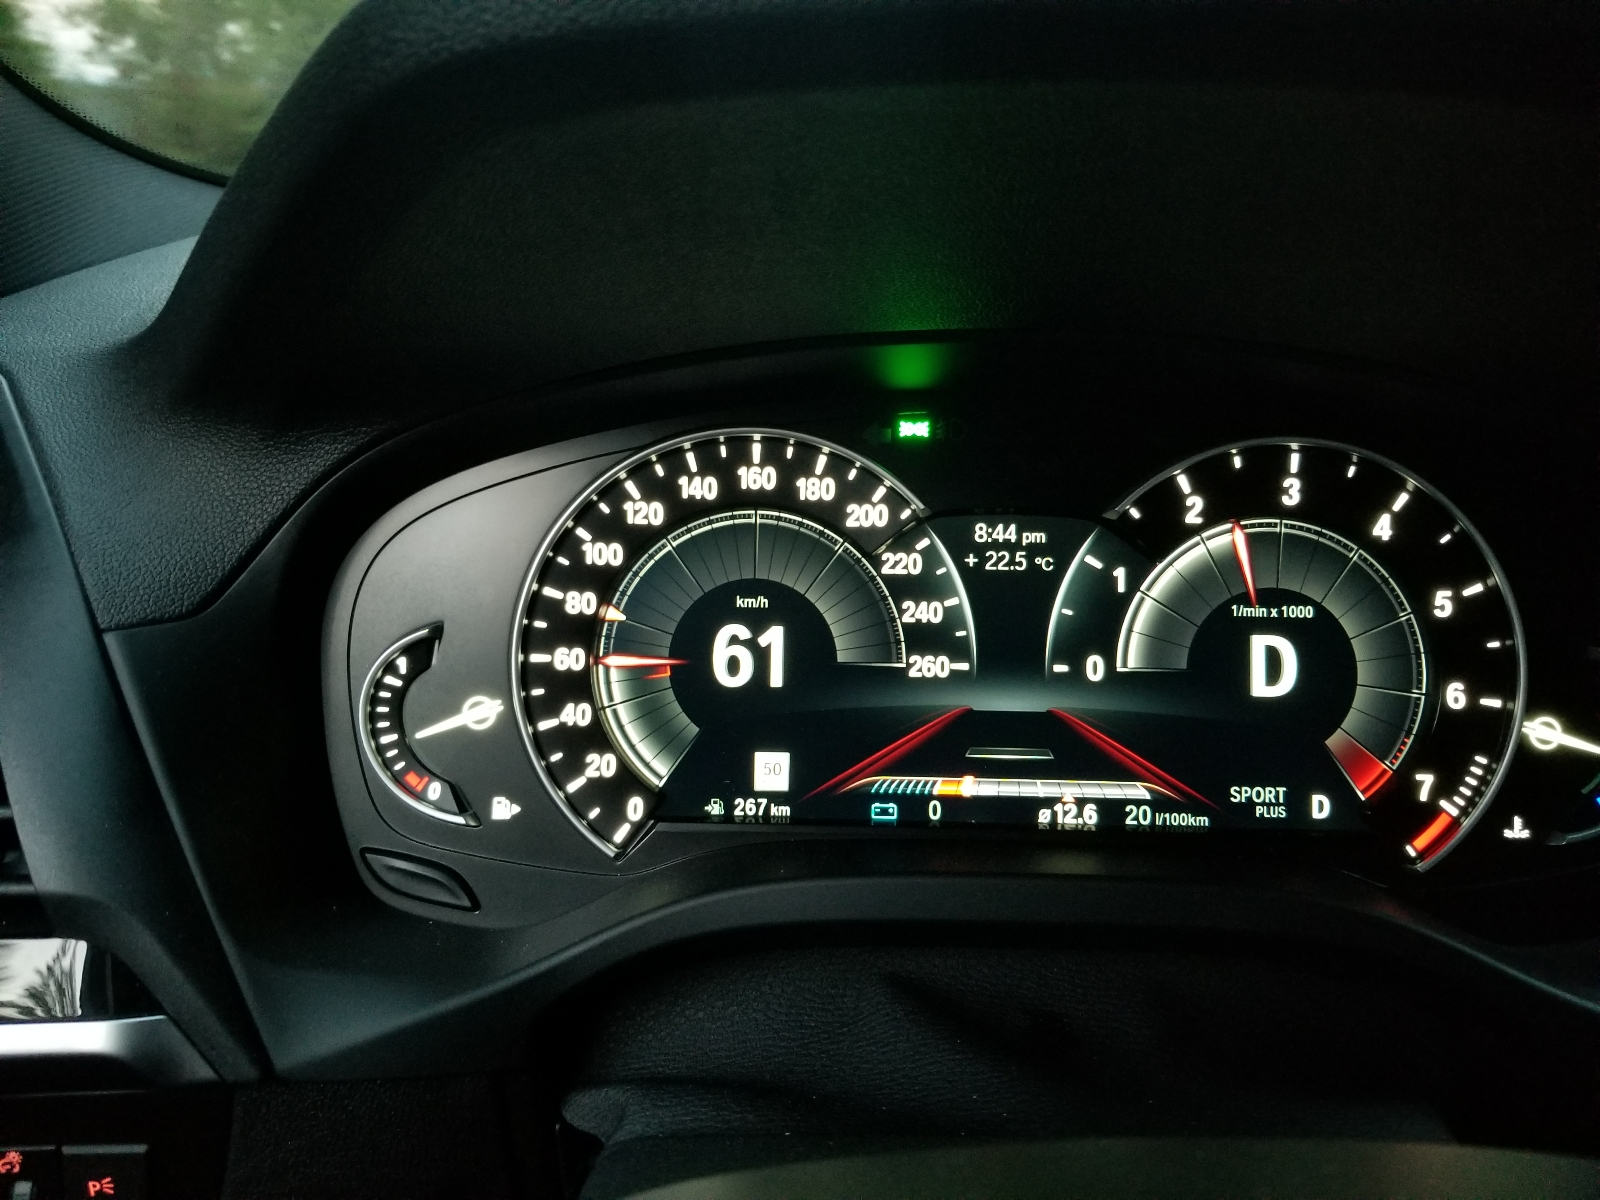 Digital Speedo In Comforteco Pro Mode